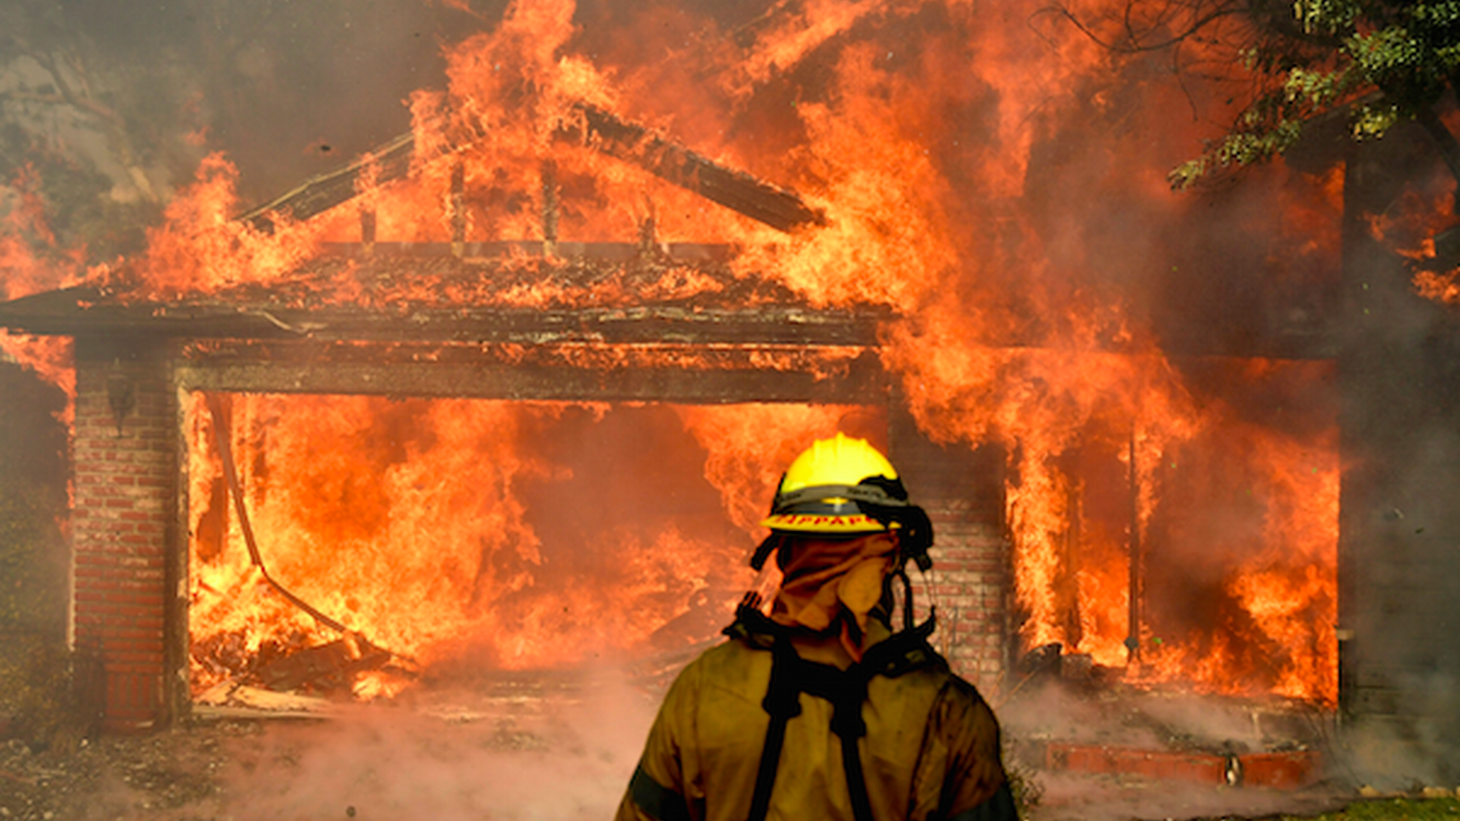 Fires raging out of control in Southern California. Air quality has forced schools to close, and the Santa Ana winds are expected to become even stronger.